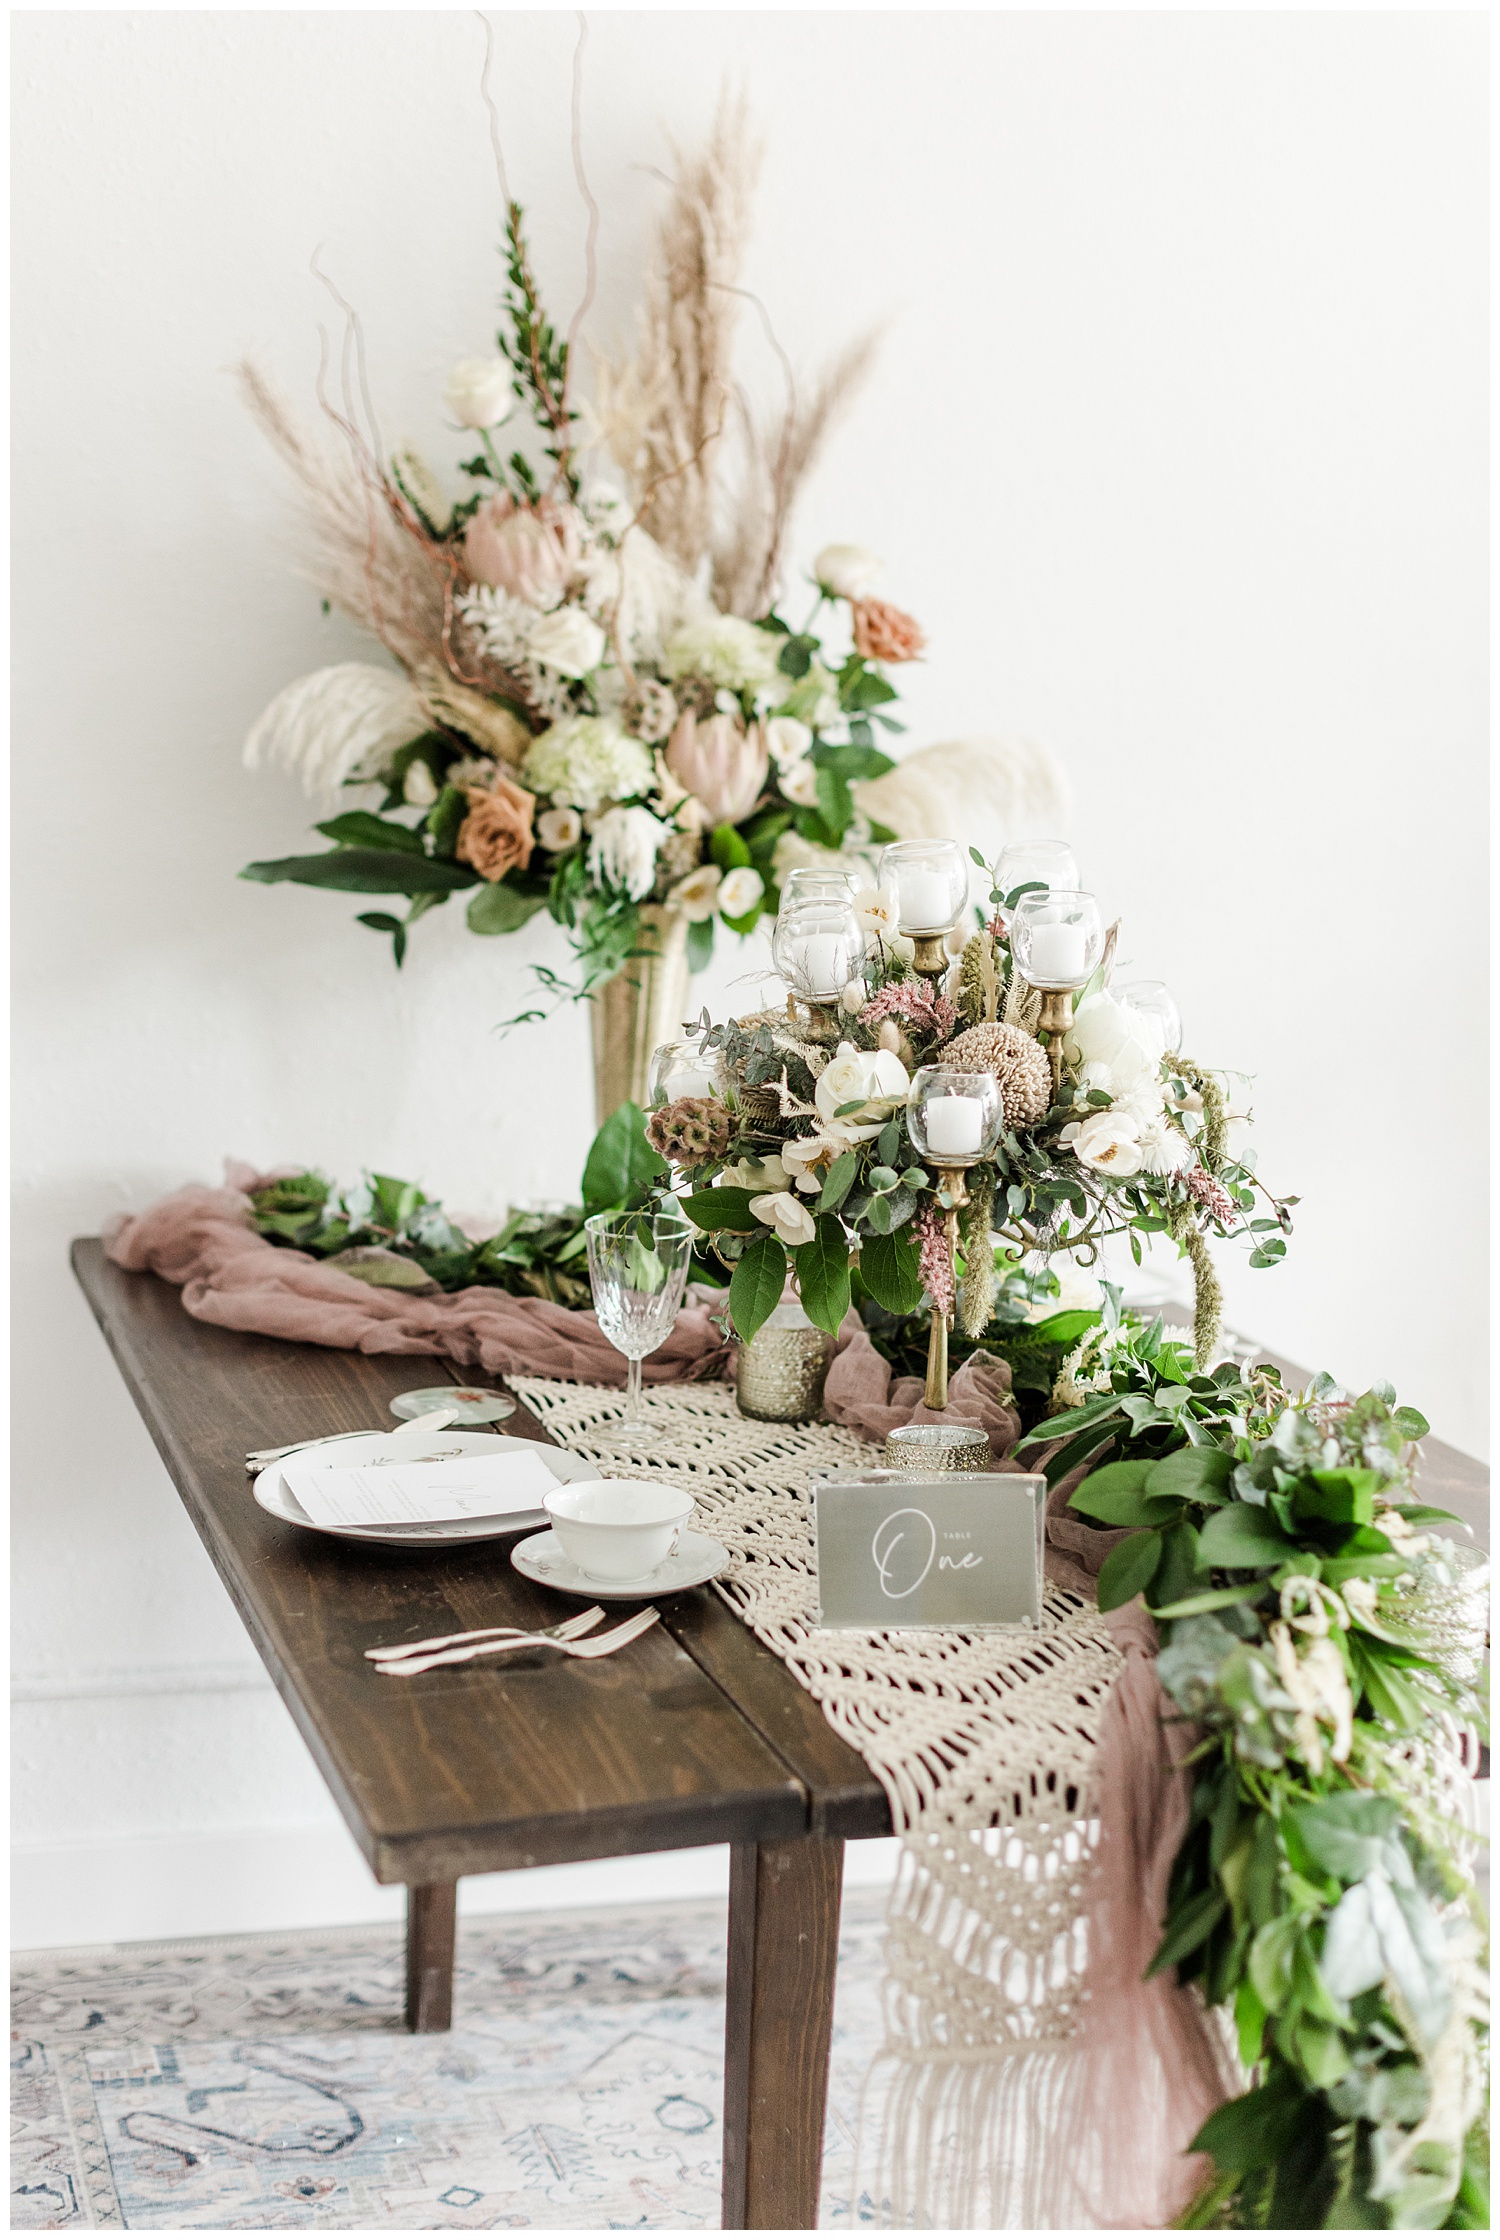 Vintage blush wedding tablescape complete with a gold candelabra, dried florals with pampas grass, macrame and eucalyptus table runner and antique china | CB Studio